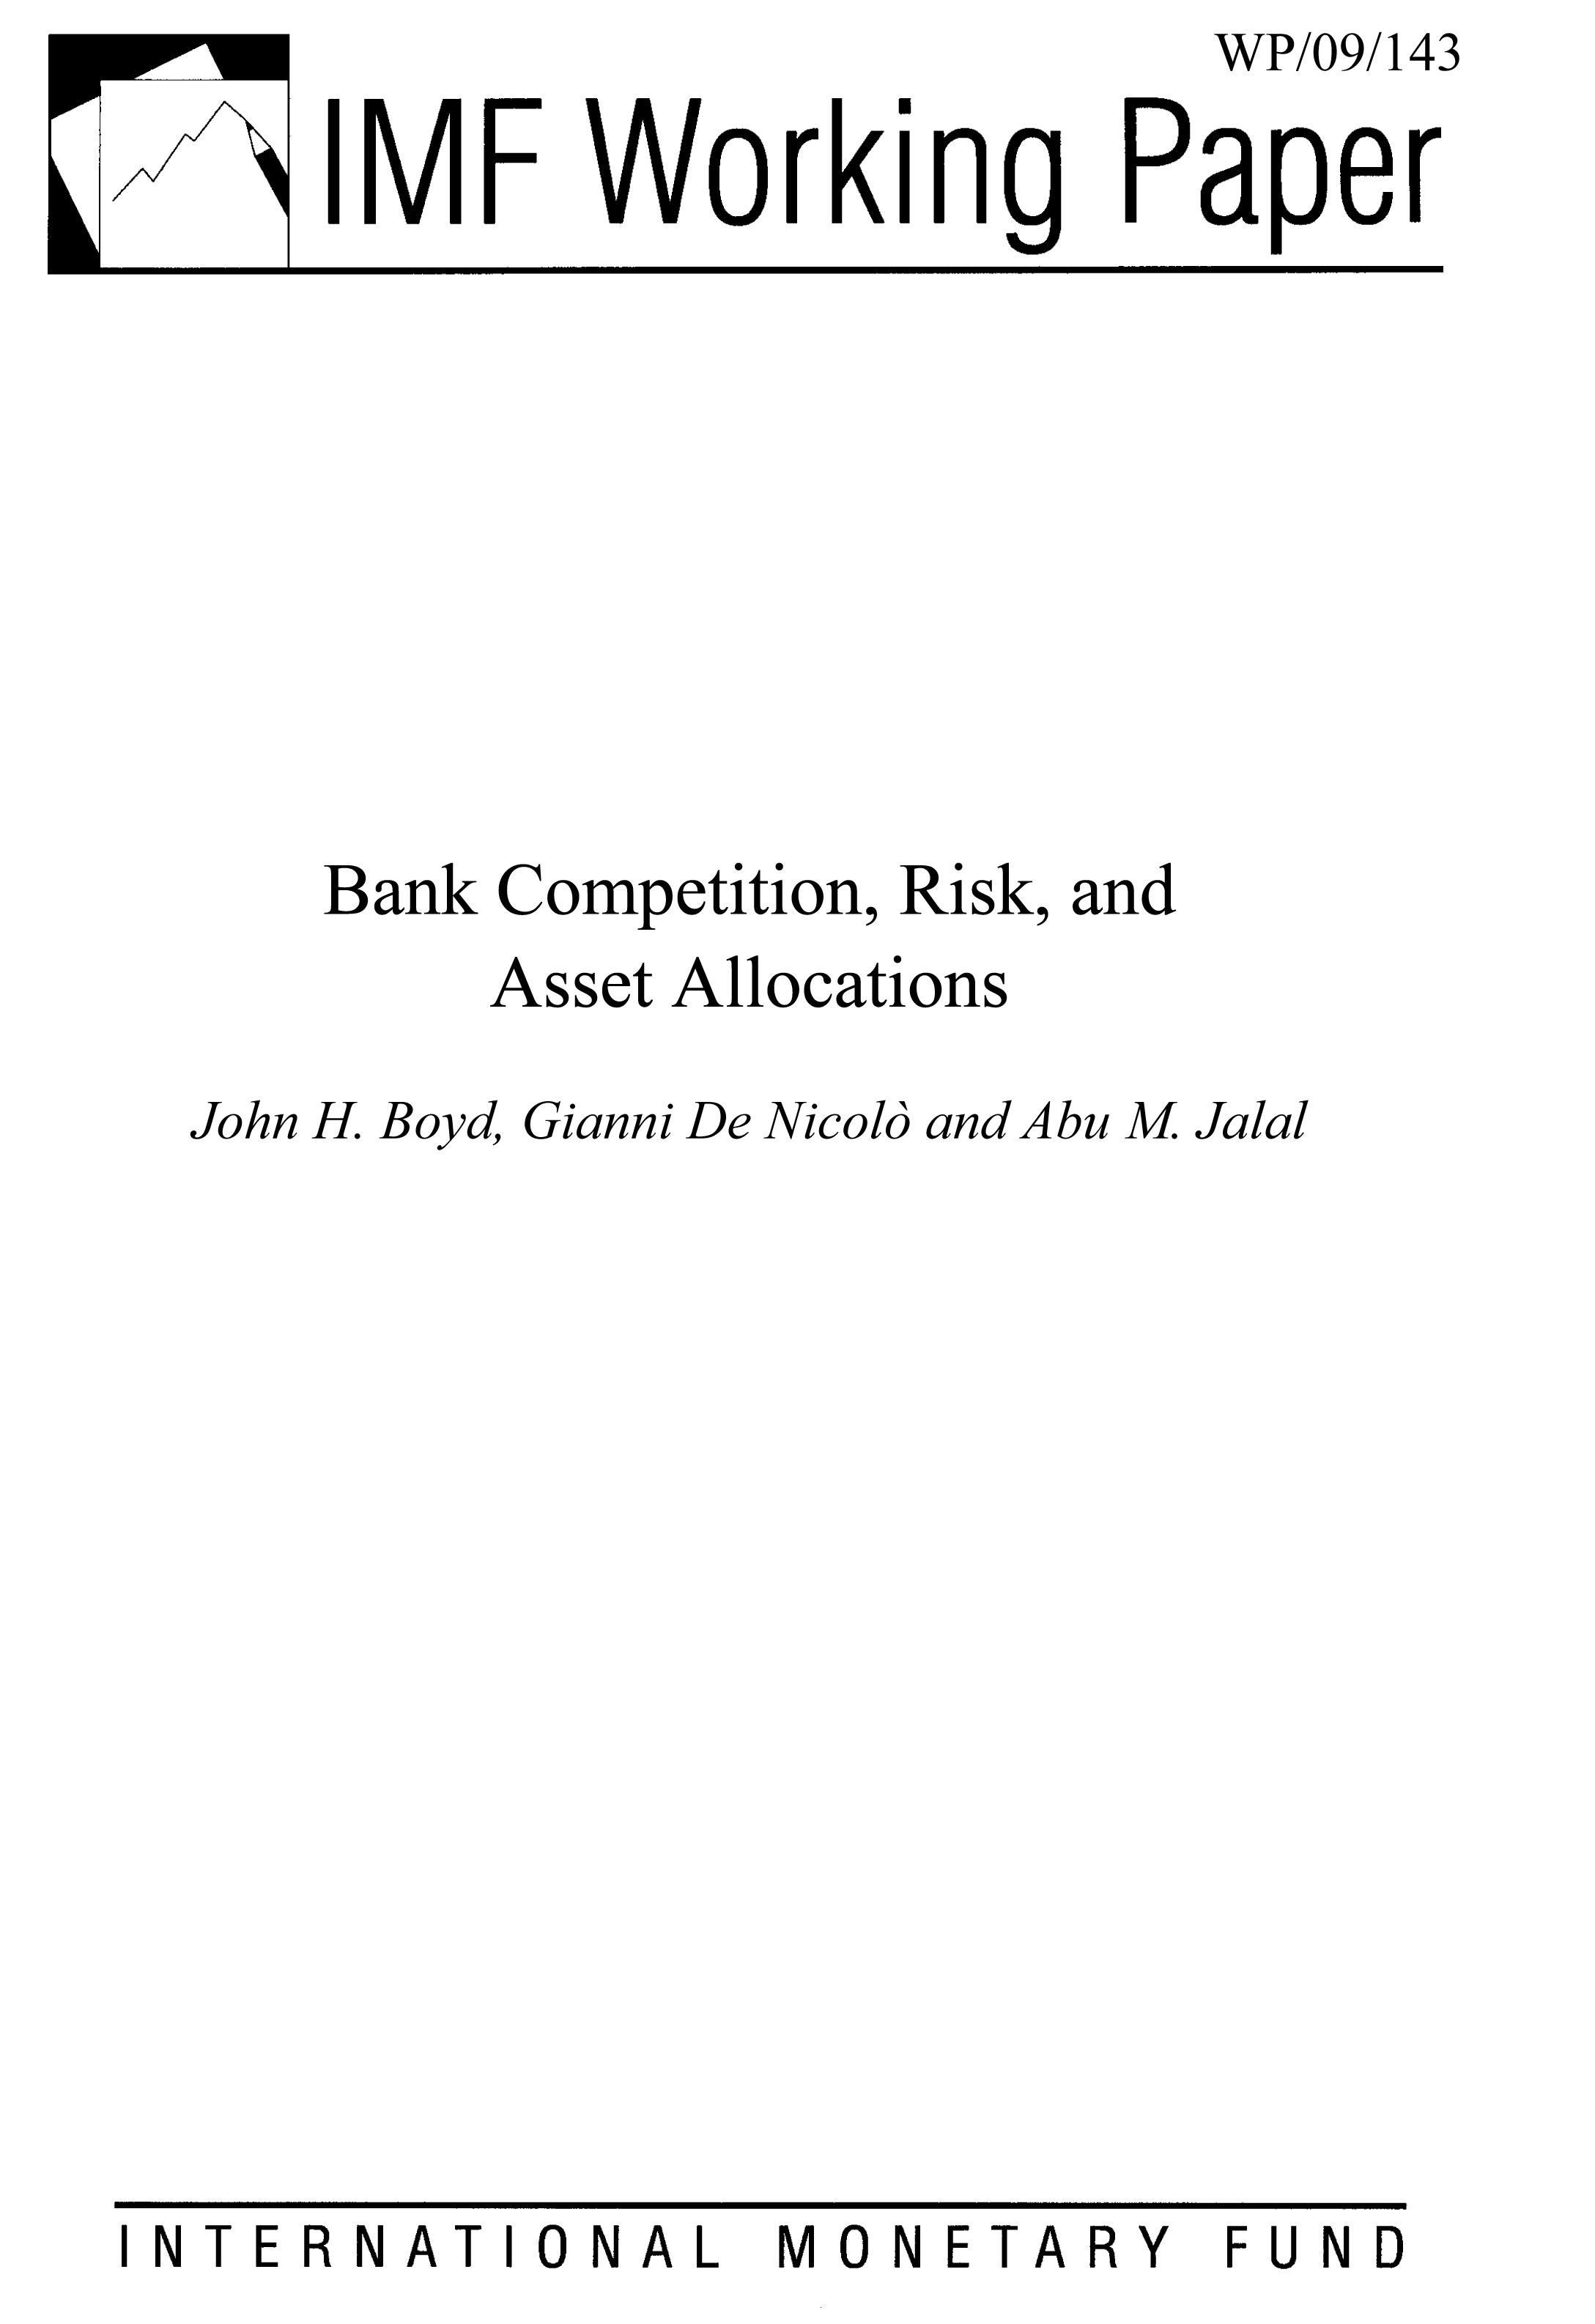 Bank Competition, Risk and Asset Allocations